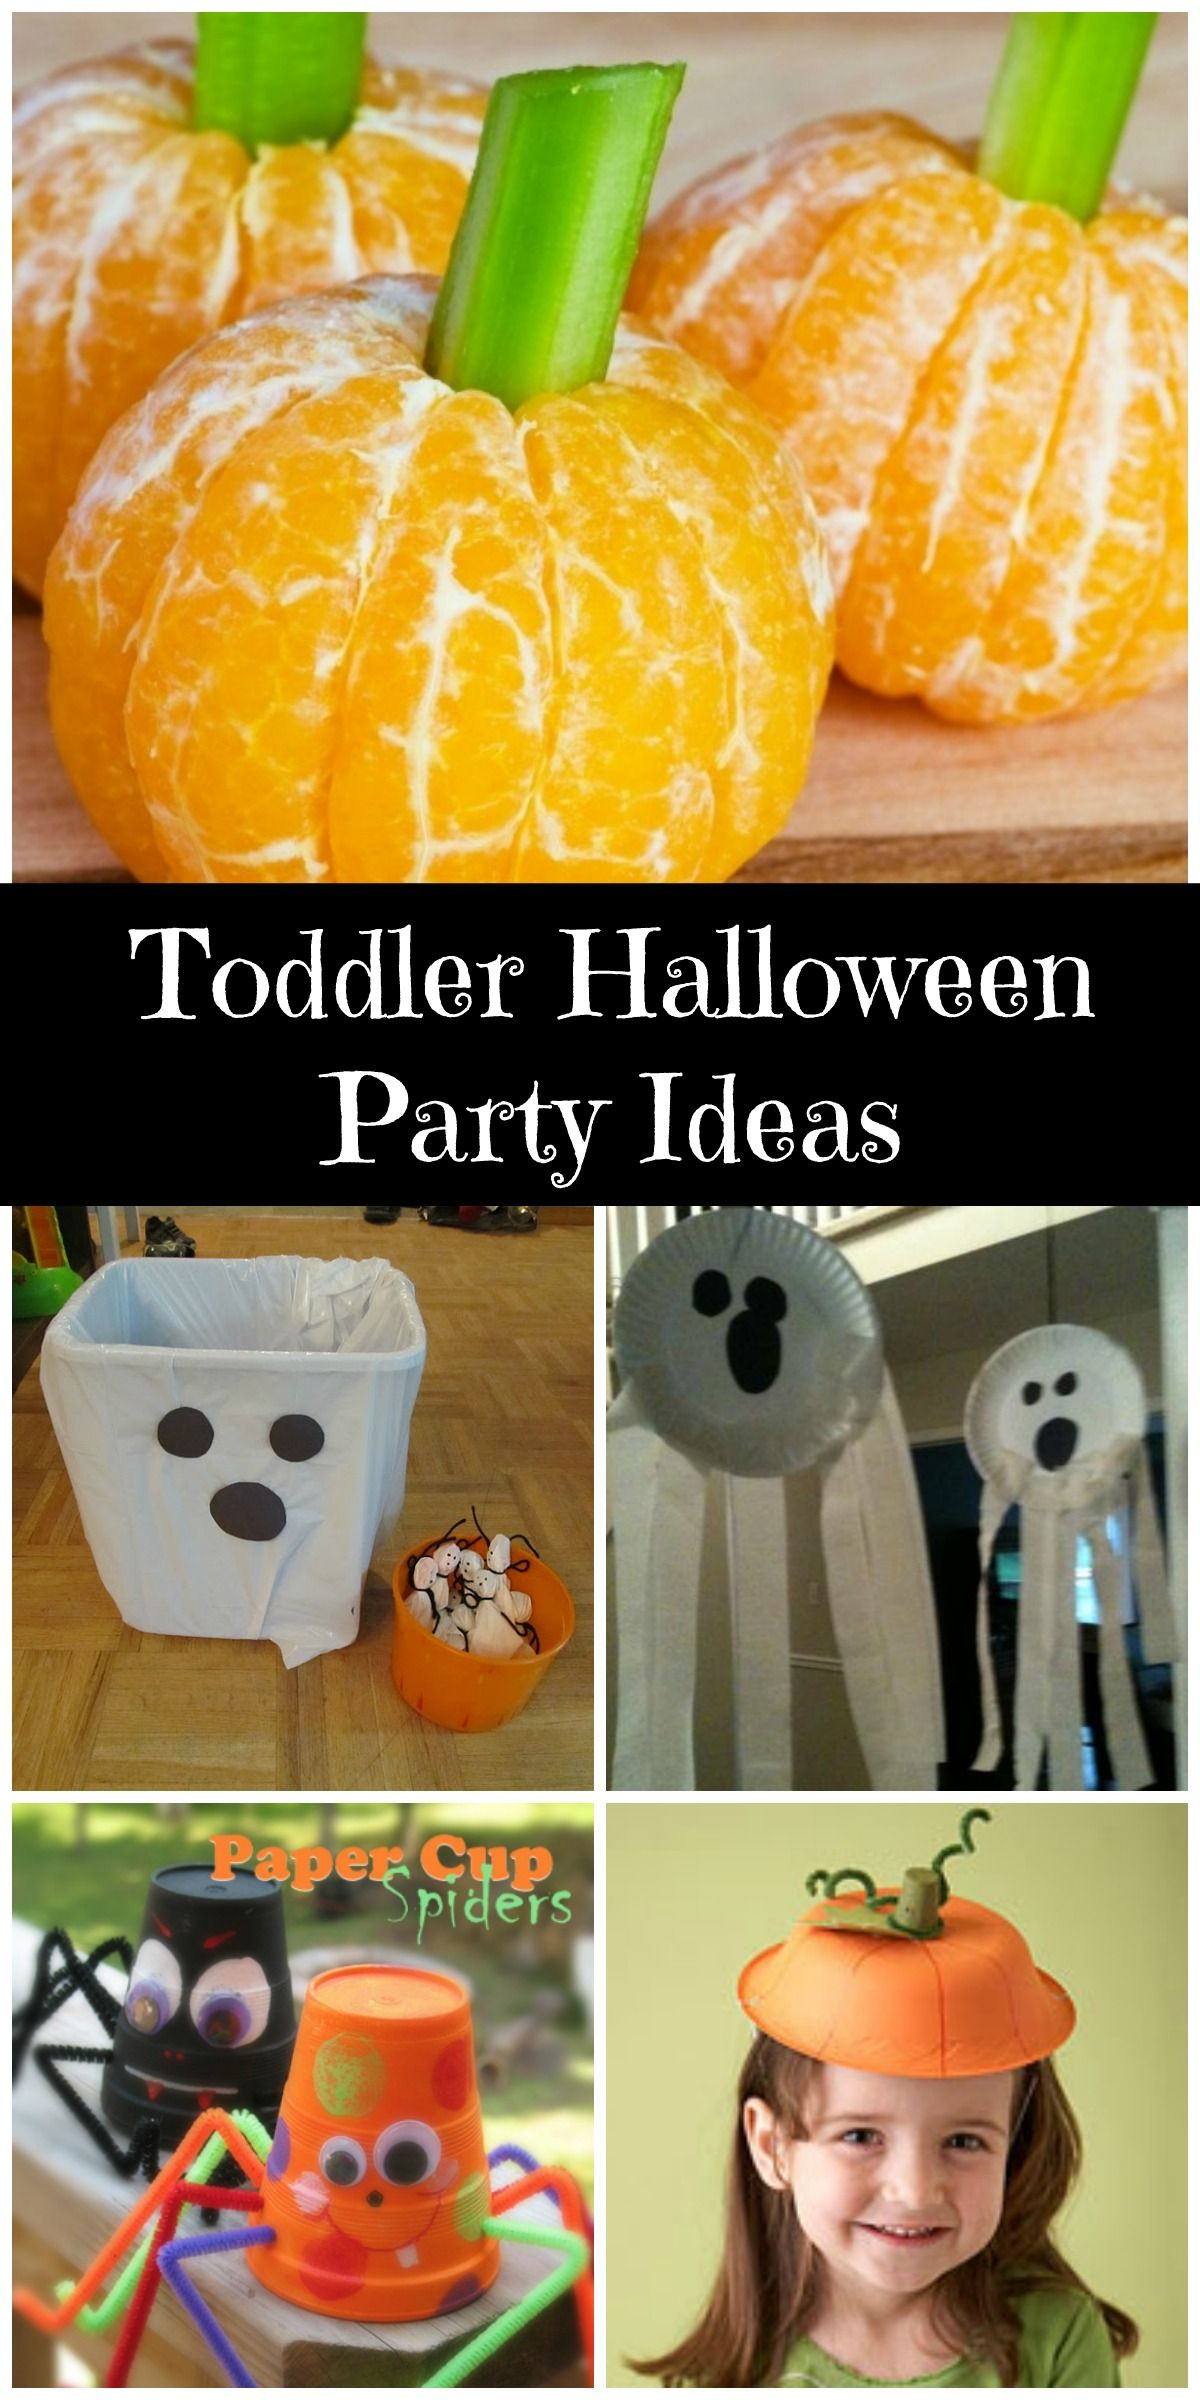 throw a toddler halloween party this year with simple age appropriate food and activities easy ways to enjoy the holiday with toddlers